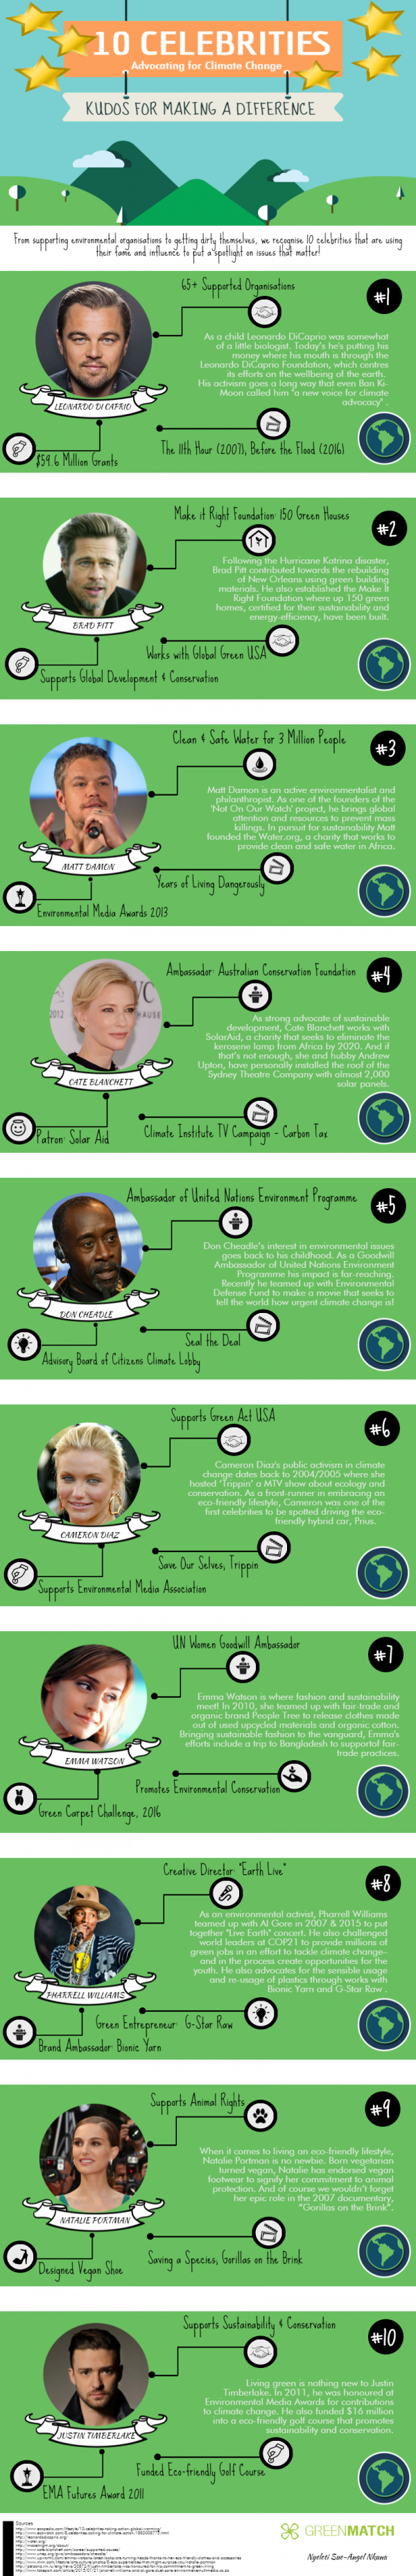 10-celebrities-climate-change